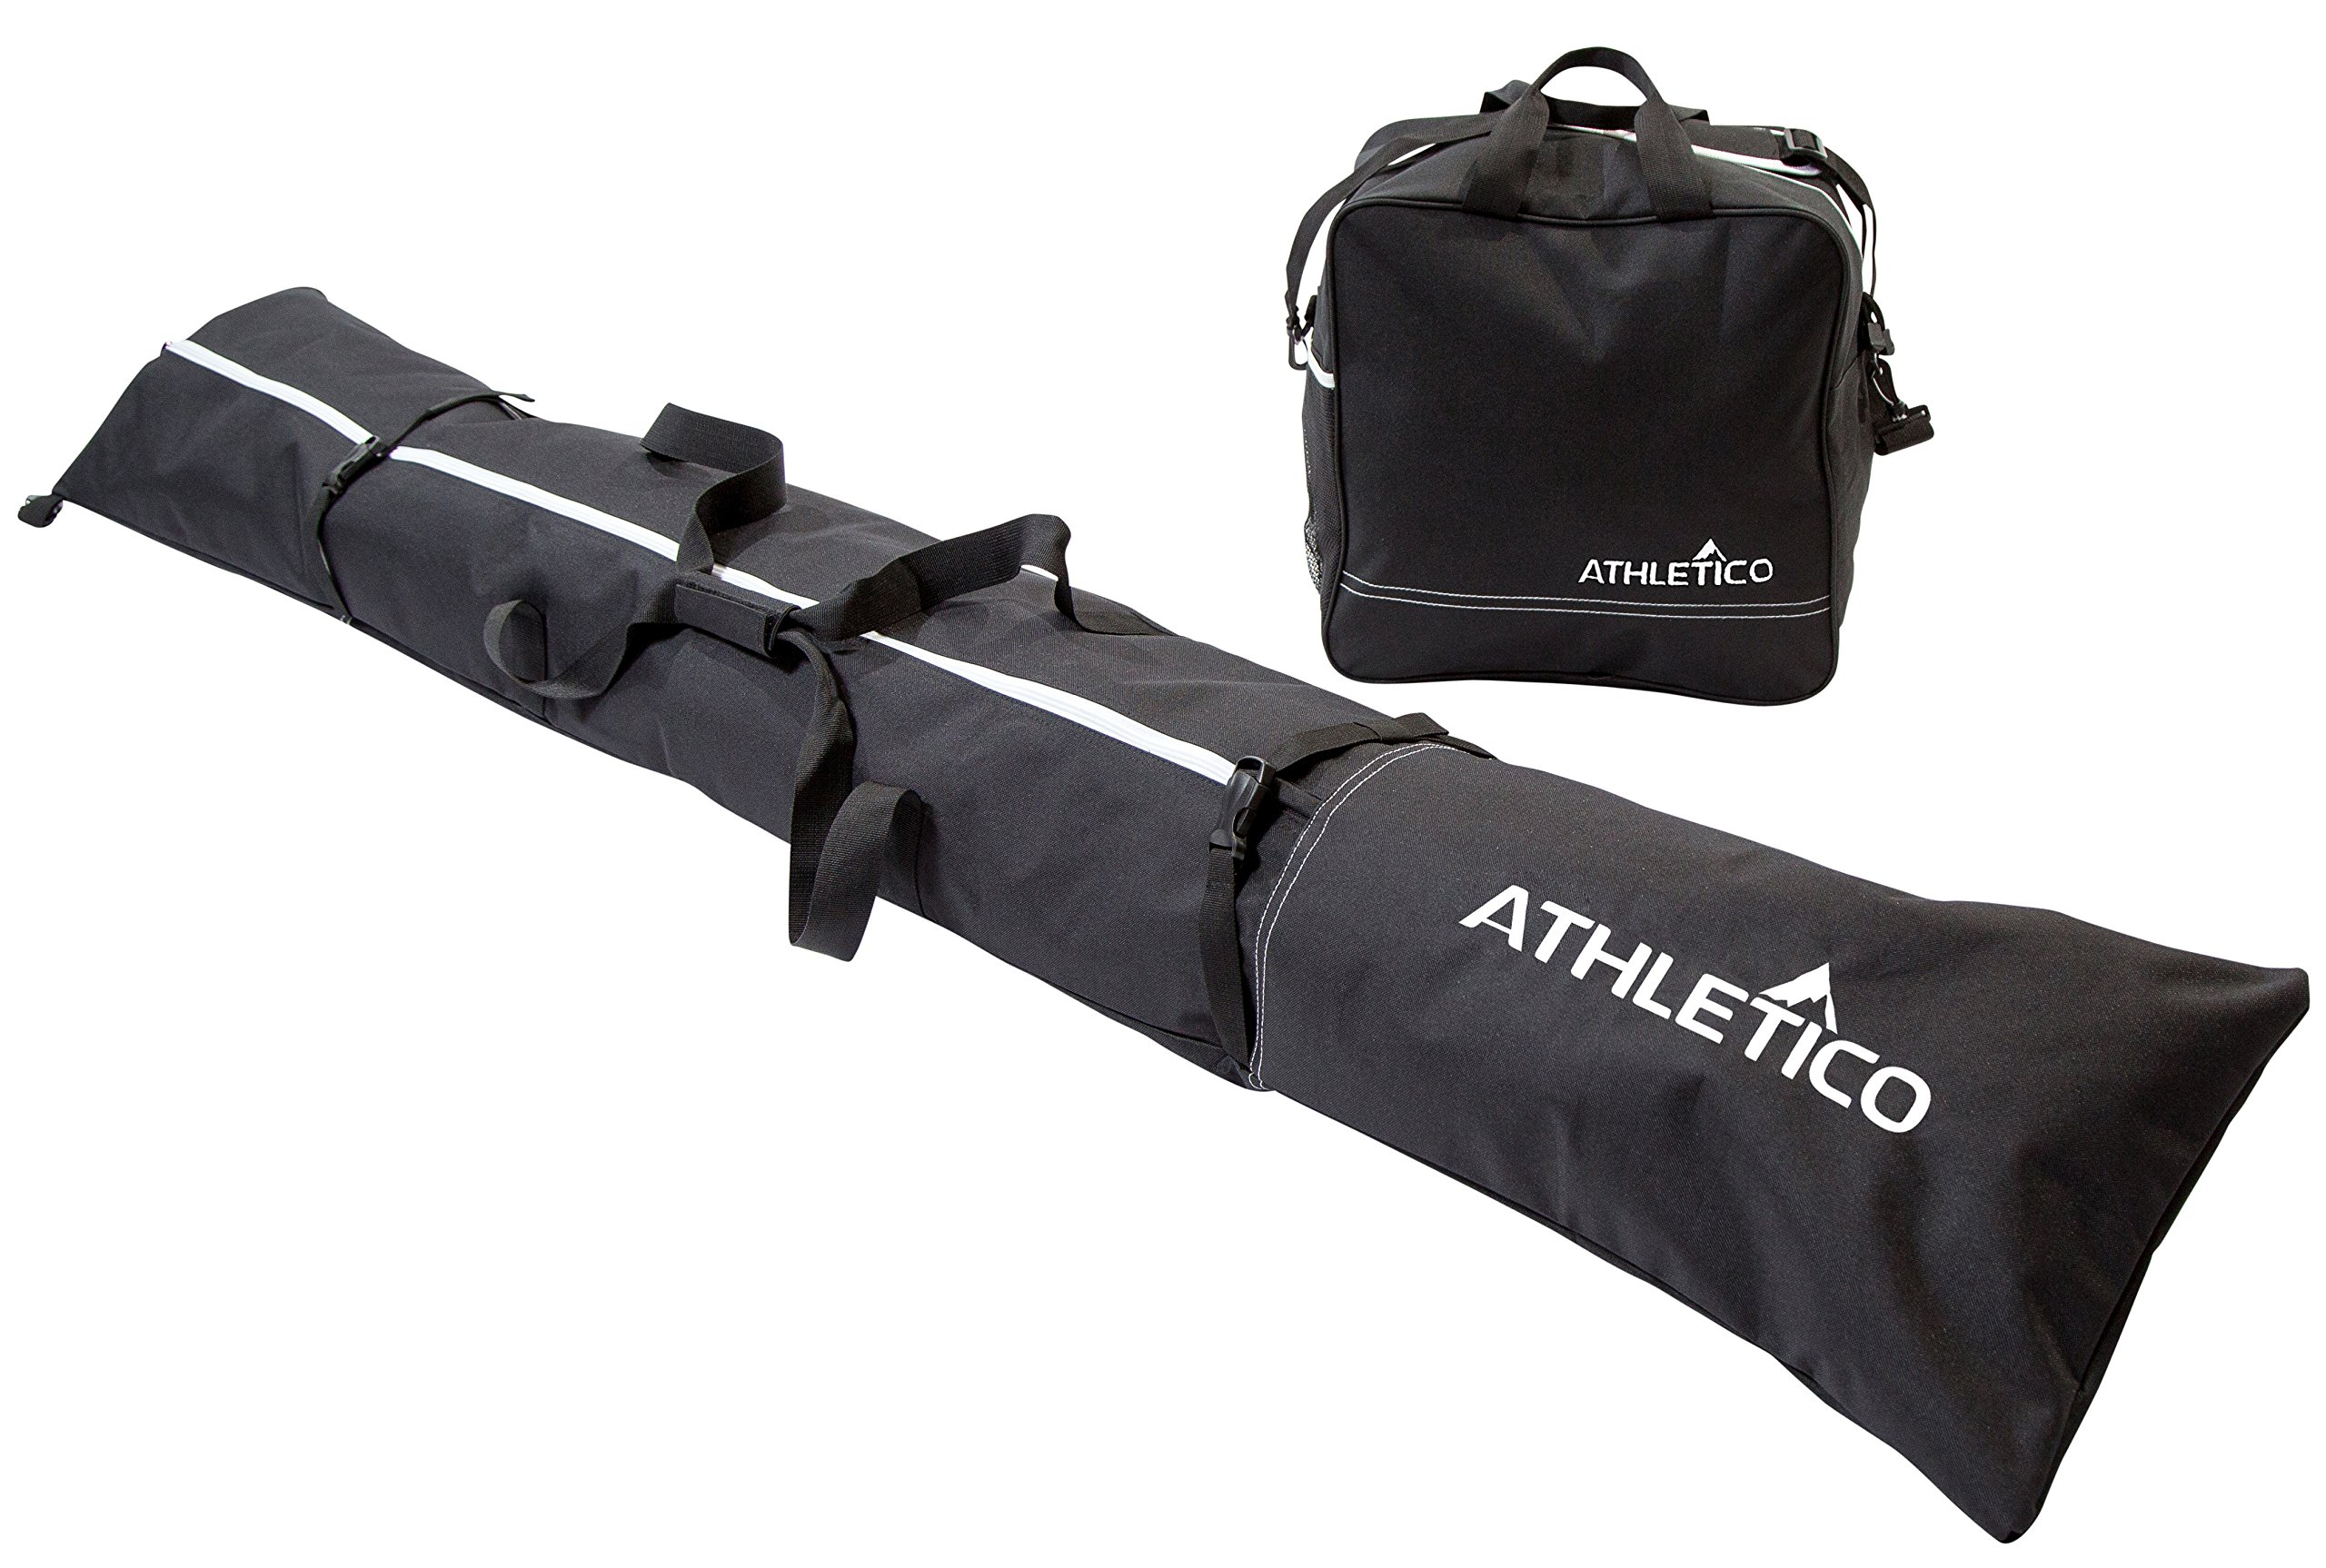 Athletico Two Piece Ski and Boot Bag Combo | Store & Transport Skis Up to 200 cm and Boots Up to Size 13 | Includes 1 Ski Bag & 1 Ski Boot Bag (Black) (Black with White Trim)